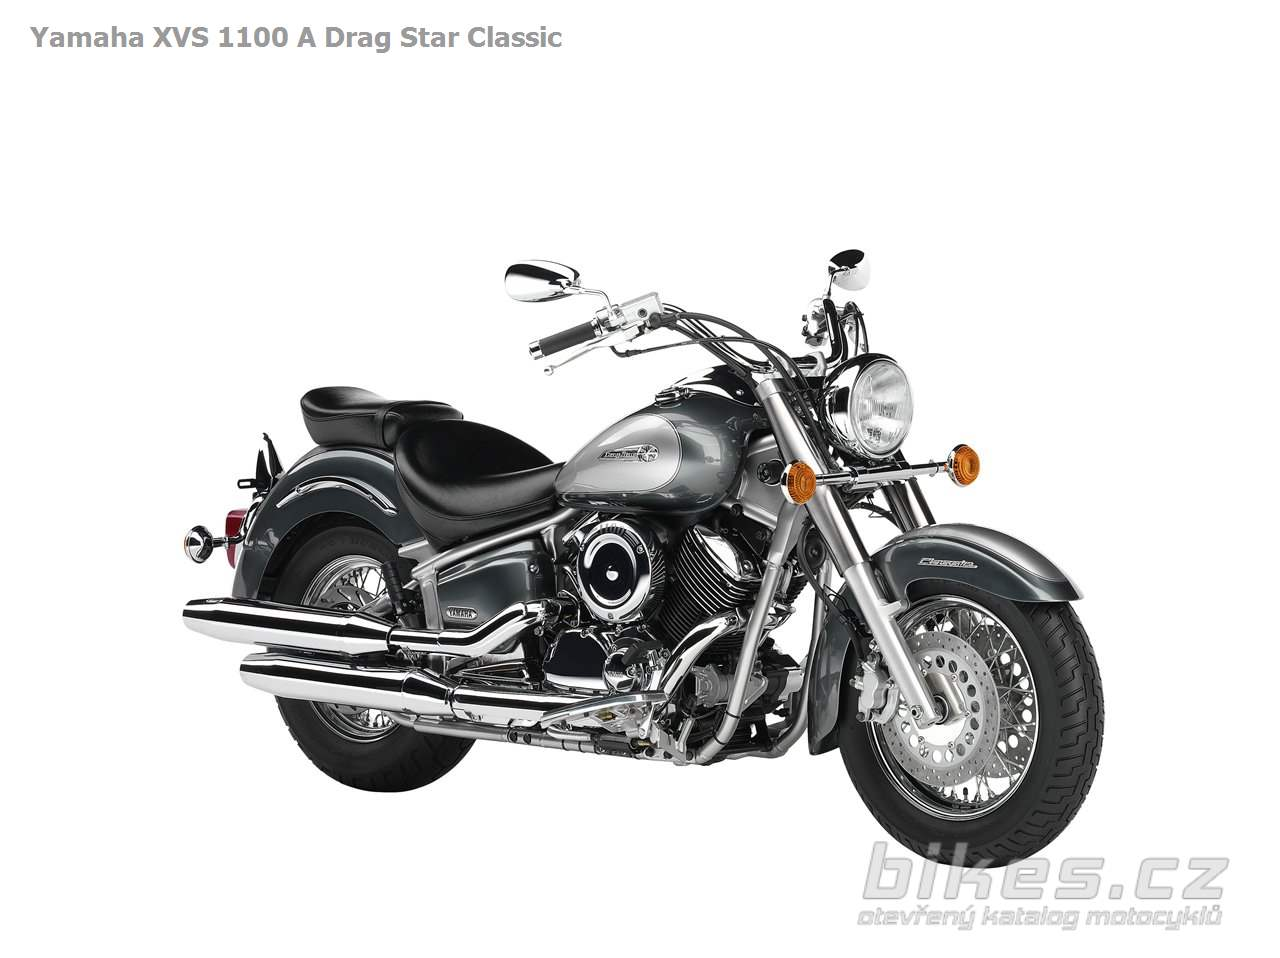 yamaha xvs 1100 a drag star classic 2006 n zory. Black Bedroom Furniture Sets. Home Design Ideas